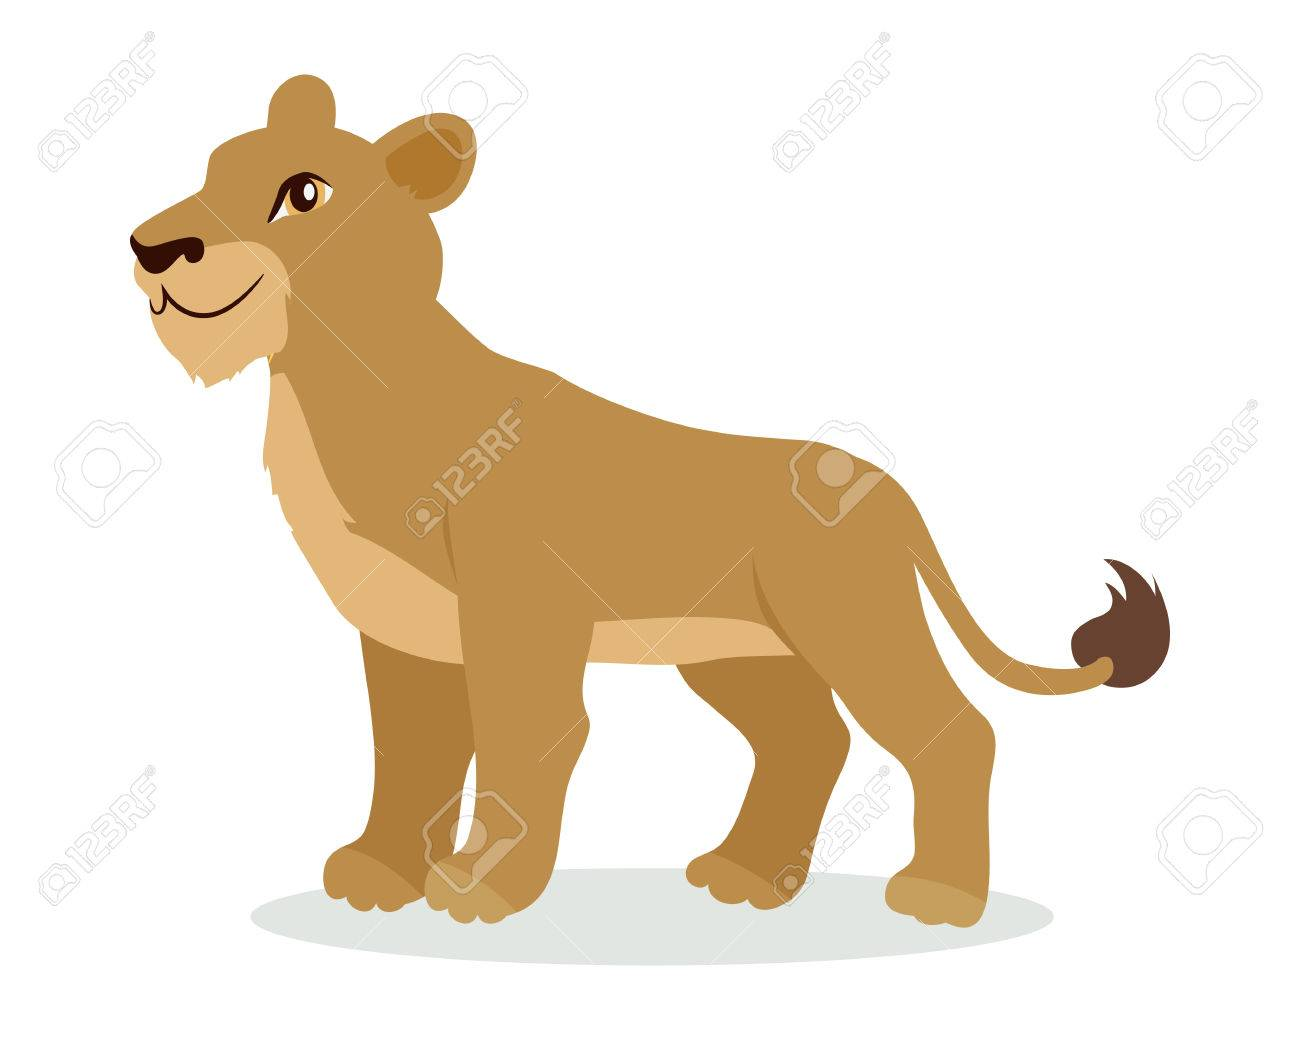 lioness or lion cub cartoon icon in flat design royalty free